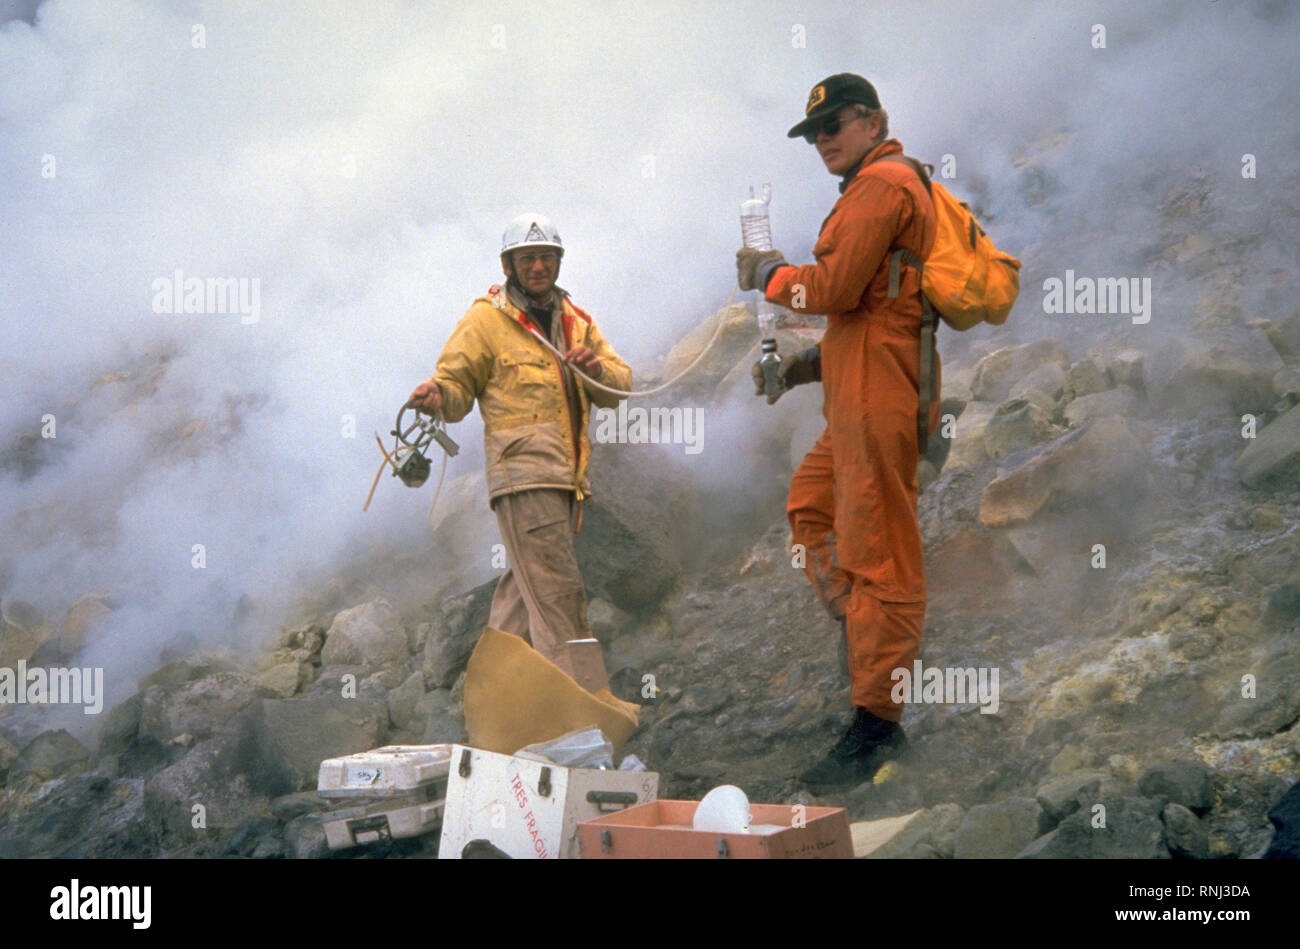 USGS geologists gathered samples by hand from vents on the dome and crater floor. Additionally, sulfur dioxide gas was measured from a specially equipped airplane before, during, and after eruptions to determine 'emission rates' for the volcano. 9/24/1981 - Stock Image